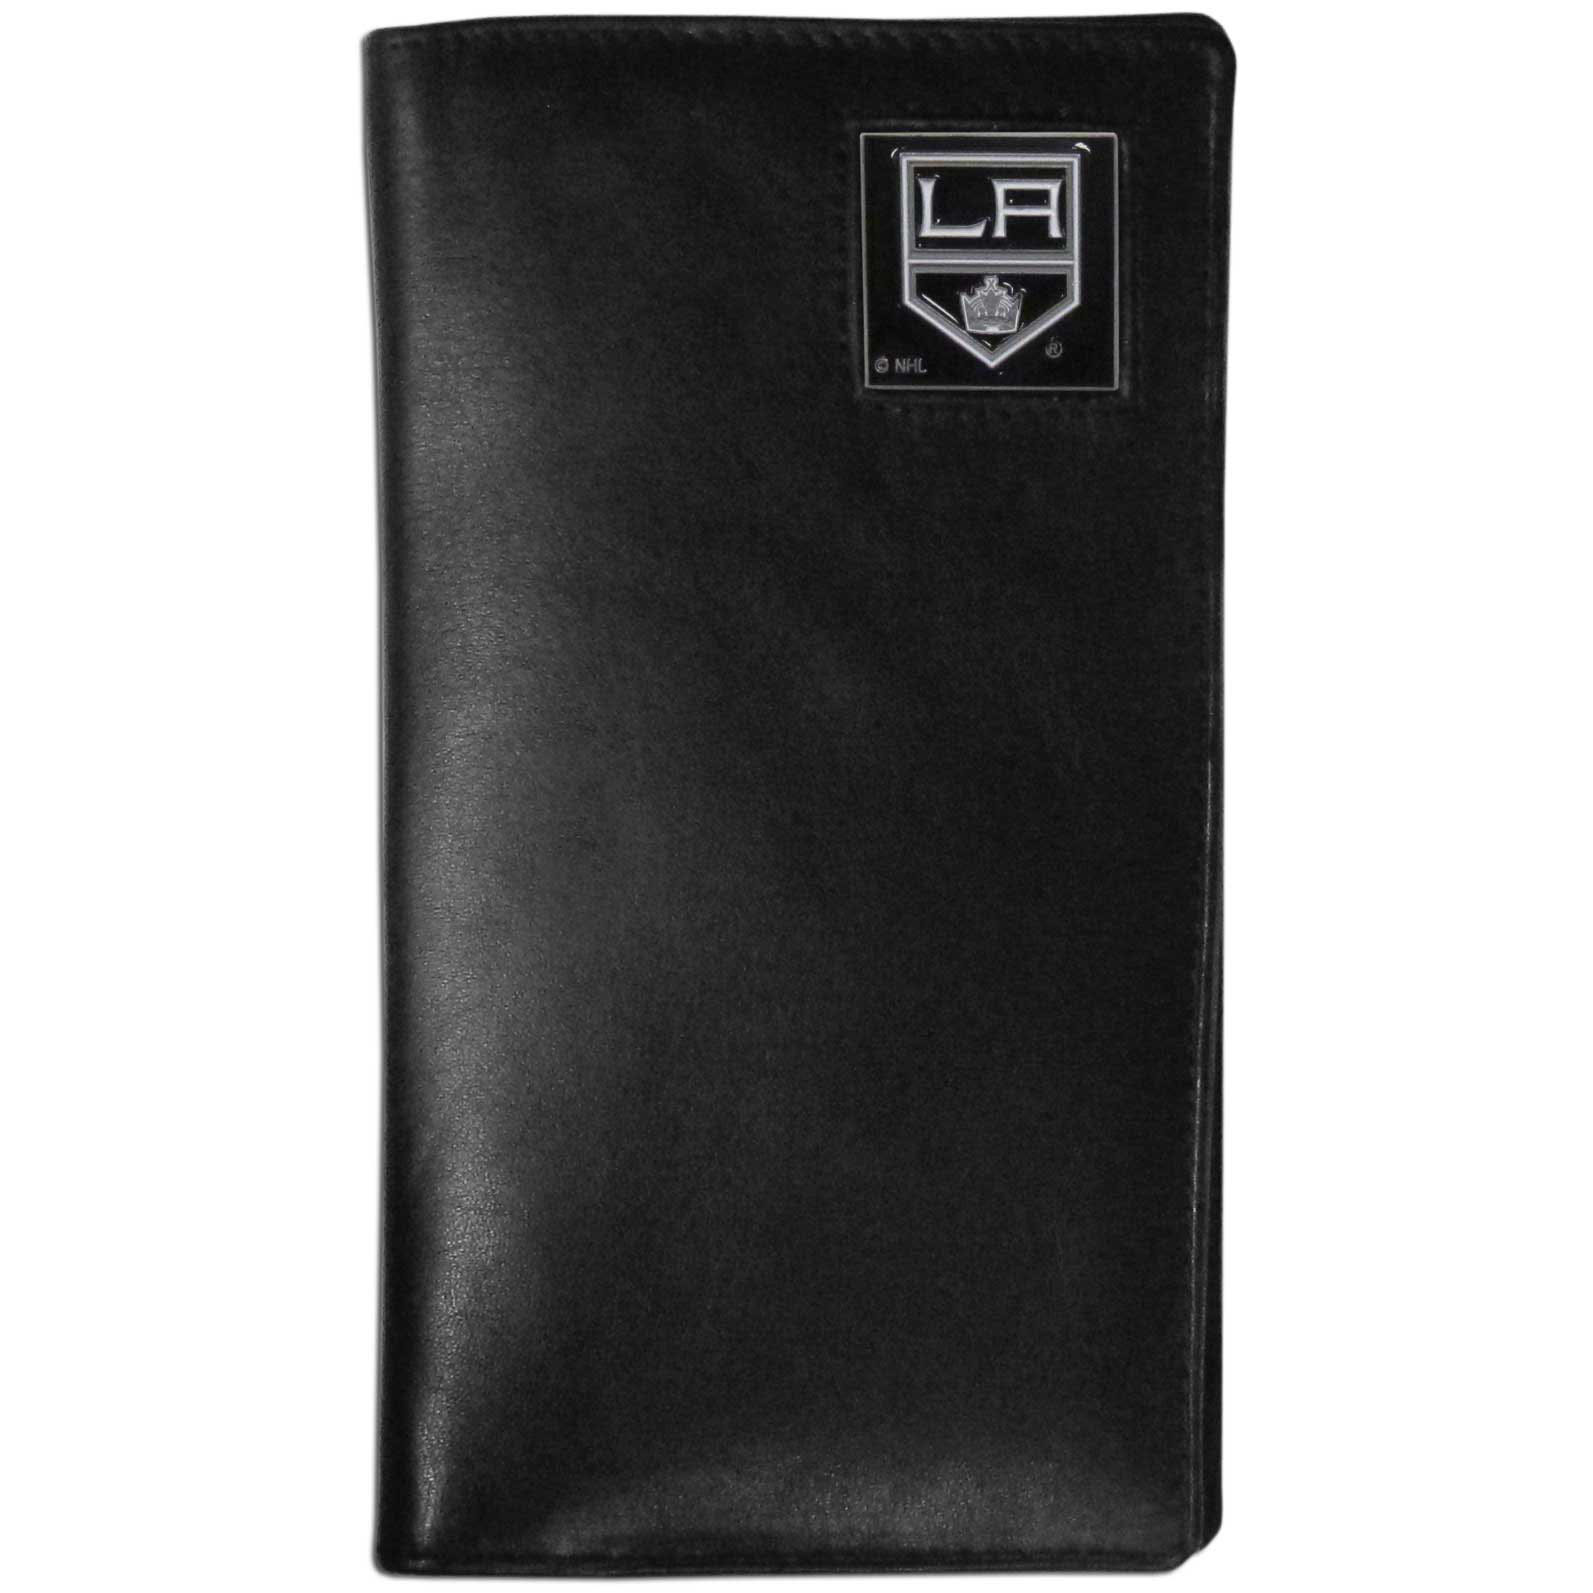 Los Angeles Kings Tall Leather Wallet - This officially licensed Los Angeles Kings tall leather wallet cover is made of high quality leather with a fully cast metal Los Angeles Kings emblem with enameled Los Angeles Kings color detail. The cover fits both side and top loaded checks and includes a large zippered pocket, windowed ID slot, numerous credit card slots and billfold pocket. Thank you for visiting CrazedOutSports